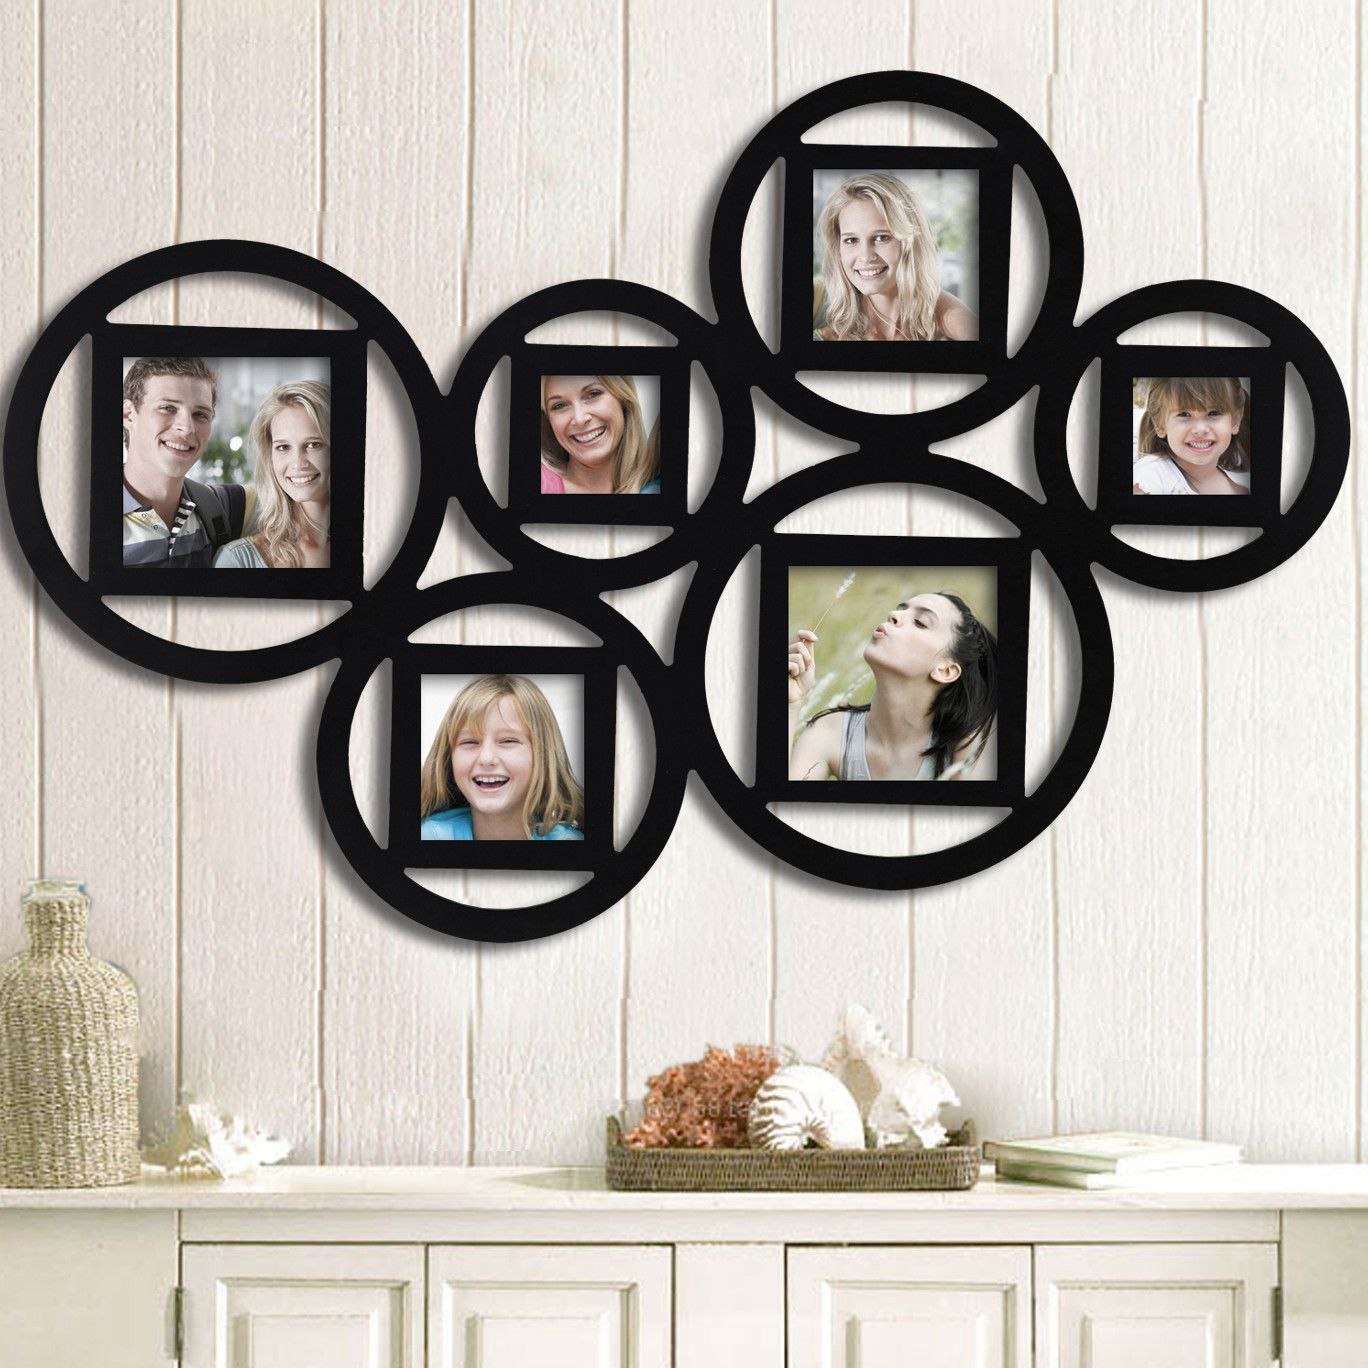 Adeco trading 6 opening decorative wall hanging collage